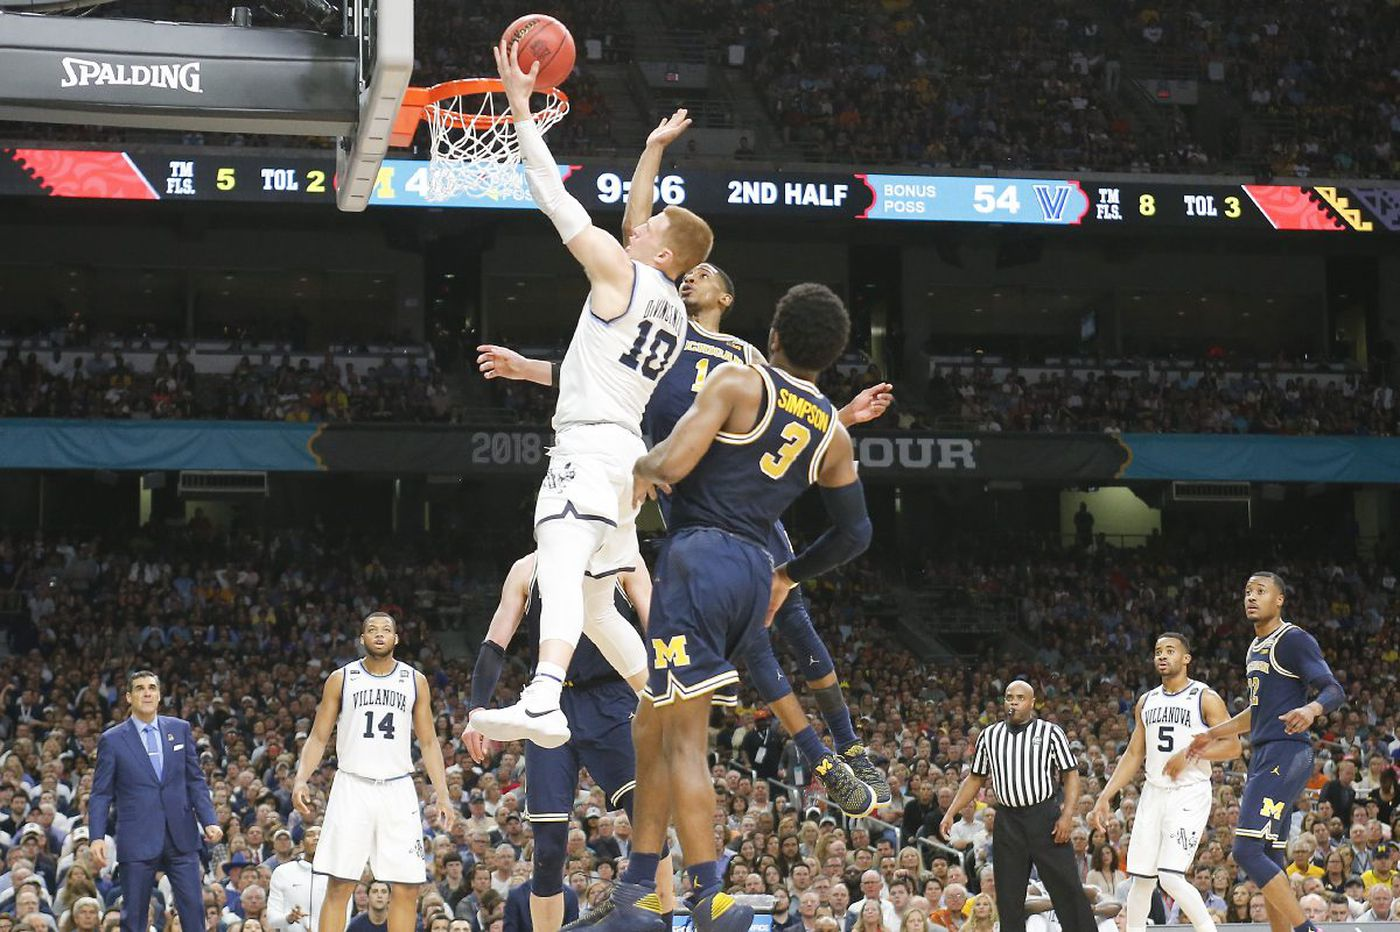 a0ecbcd34a4 Villanova's Donte DiVincenzo is NCAA championship game star with record 31  points | Marcus Hayes